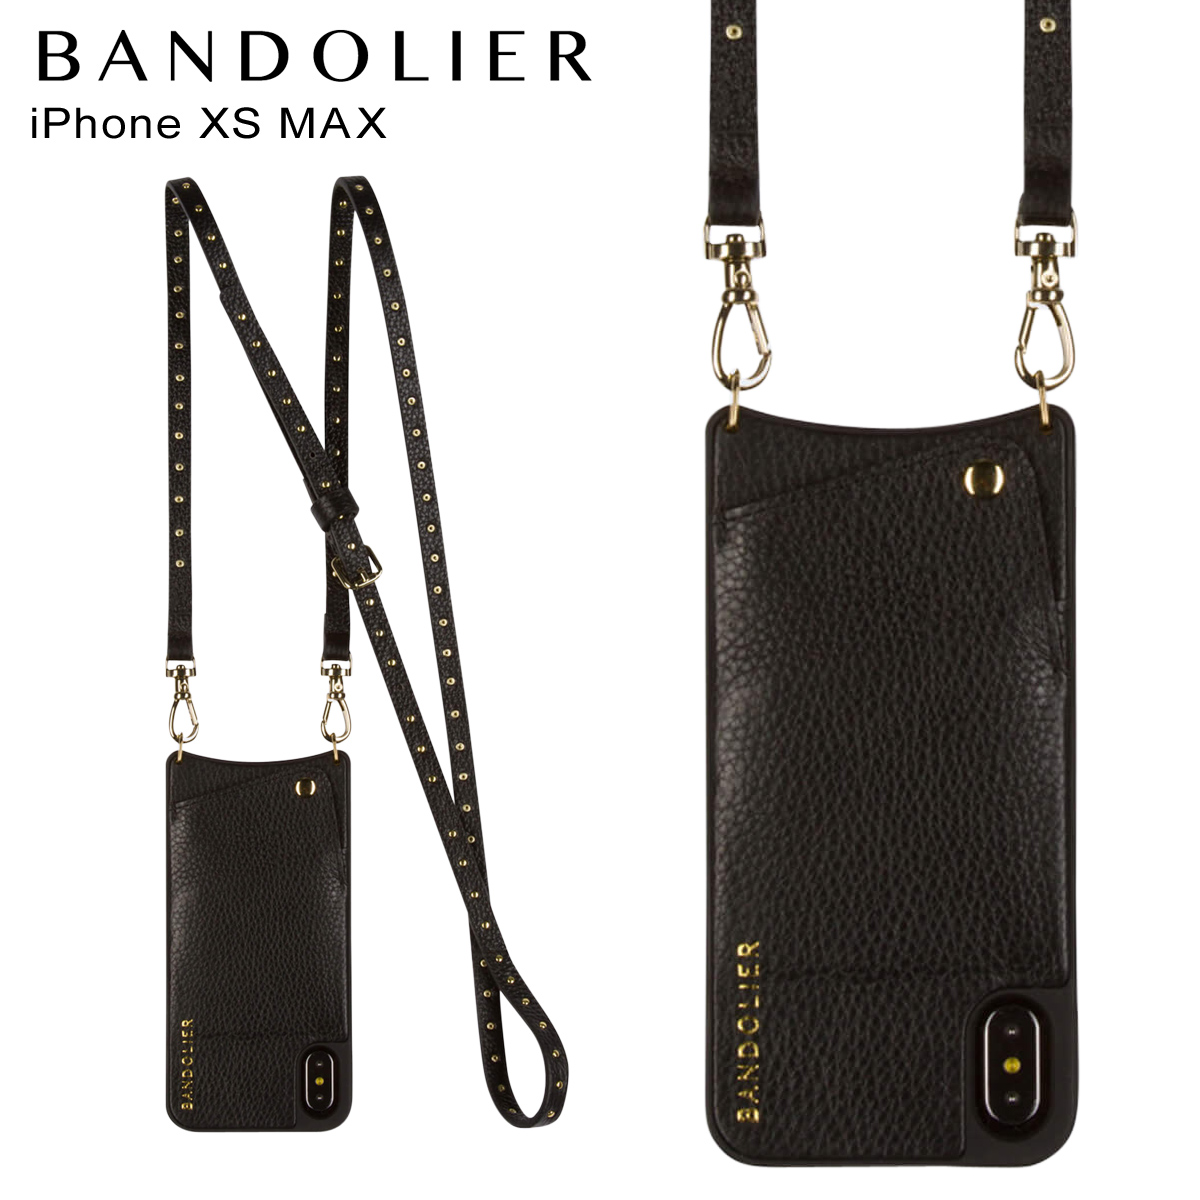 separation shoes d0ba9 70caa Band re-yeah BANDOLIER iPhone XS MAX case shoulder smartphone eyephone  leather NICOLE GOLD men gap Dis black black 10NIC1001